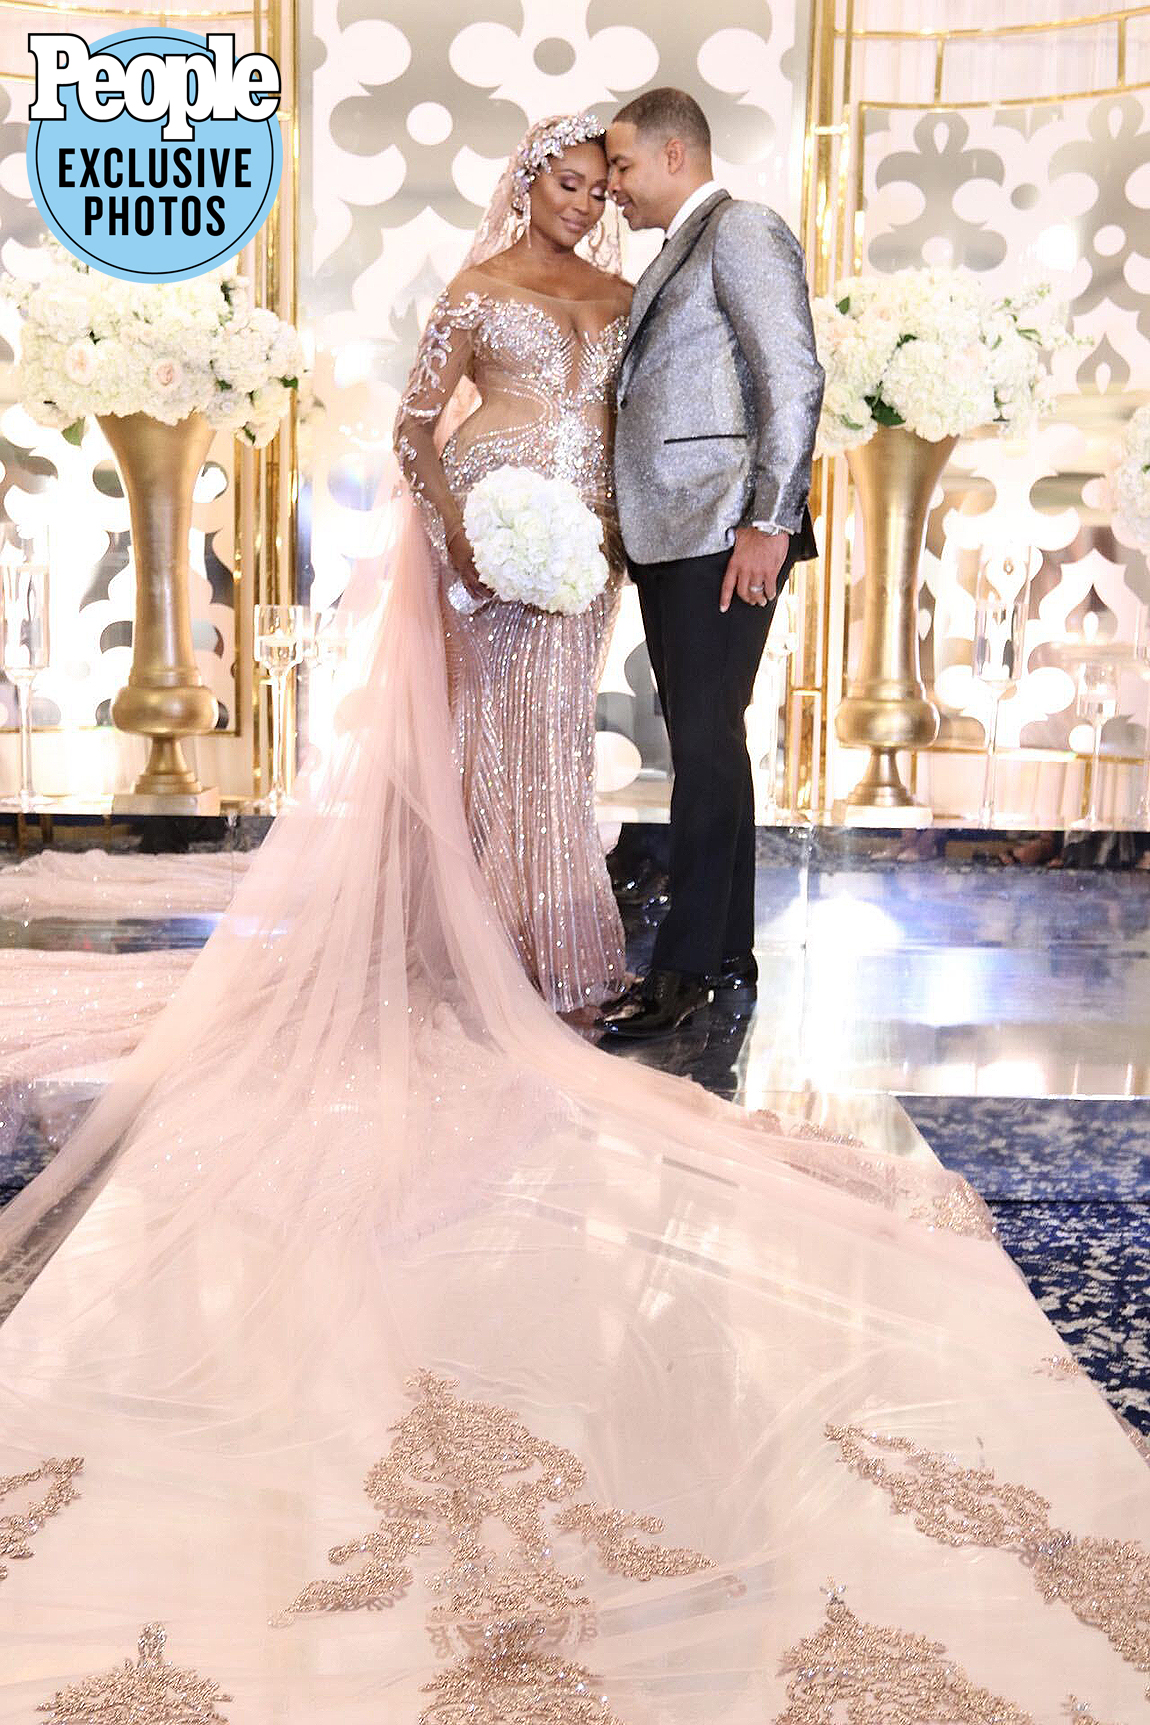 """The Real Housewives of Atlanta star said """"I do"""" to her forever #CHILL partner on Oct. 10 during a lavish wedding ceremony at the Governors Towne Club in Acworth, Georgia, PEOPLE has exclusively revealed.                             """"Mike and I are elated that today has finally come! 10/10/20 is and always will be our perfect date. We are not perfect, but, are perfect for each other,"""" the newlyweds told PEOPLE. """"We are living in a very different time, and now more than ever we realize that life is too short, and to never take anything for granted. We are so grateful to have found each other. Love with the help of God conquers all.""""                             The bride wore a gown by Nneka C. Alexander ofBrides by Nonaalong with Badgley Mischka shoes and a headpiece by Bridal Styles Boutique. The couple exchanged rings from Rockford Collection and Beverly Diamonds during the celebratory event, put together by wedding planner Courtney Ajinça.                             The couple exchanged vows in front of 250 guests, including Bailey's reality show costarsKandi Burruss,Kenya MooreandformerRHOAcastmateEva Marcille, who served as bridesmaids.                             """"I couldn't imagine my day without them,"""" Bailey said."""